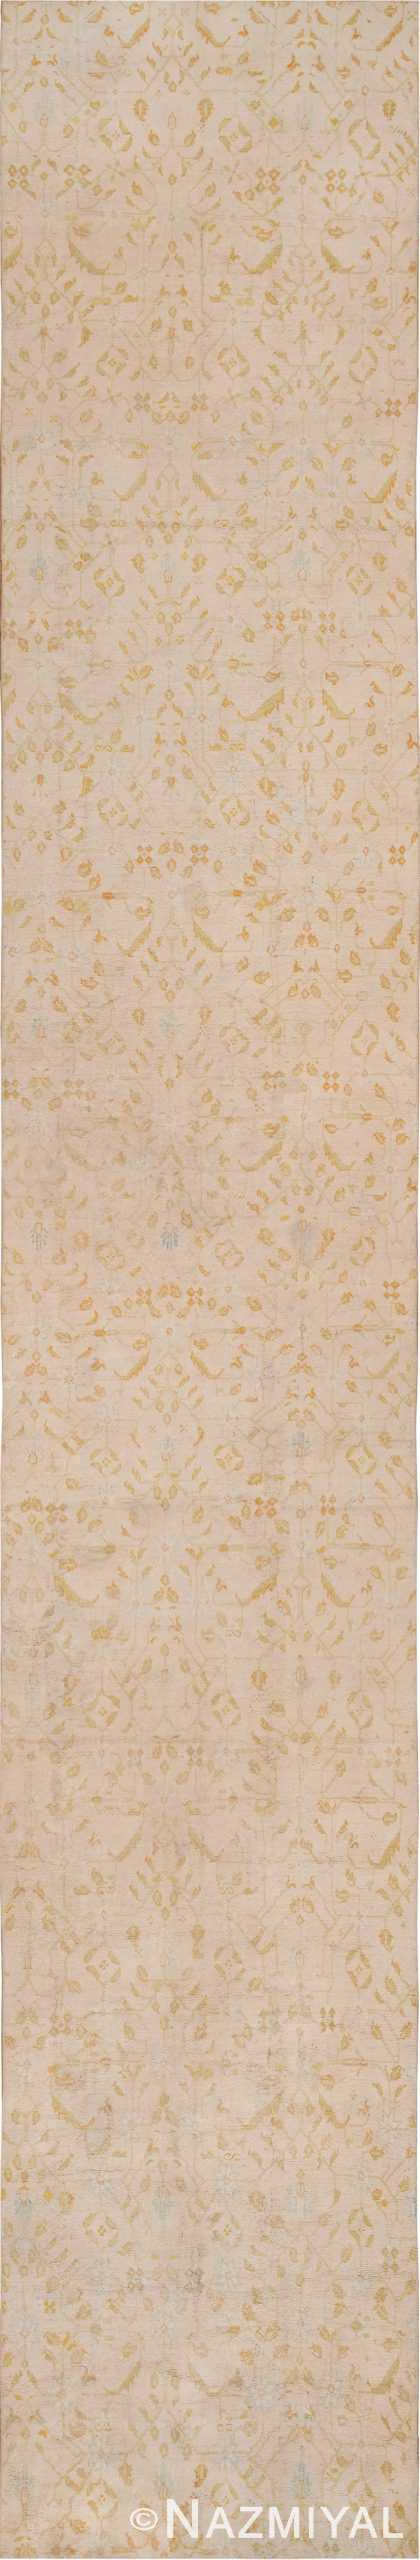 Long and Narrow Ivory Antique Indian Agra Runner Rug 49752 - Nazmiyal